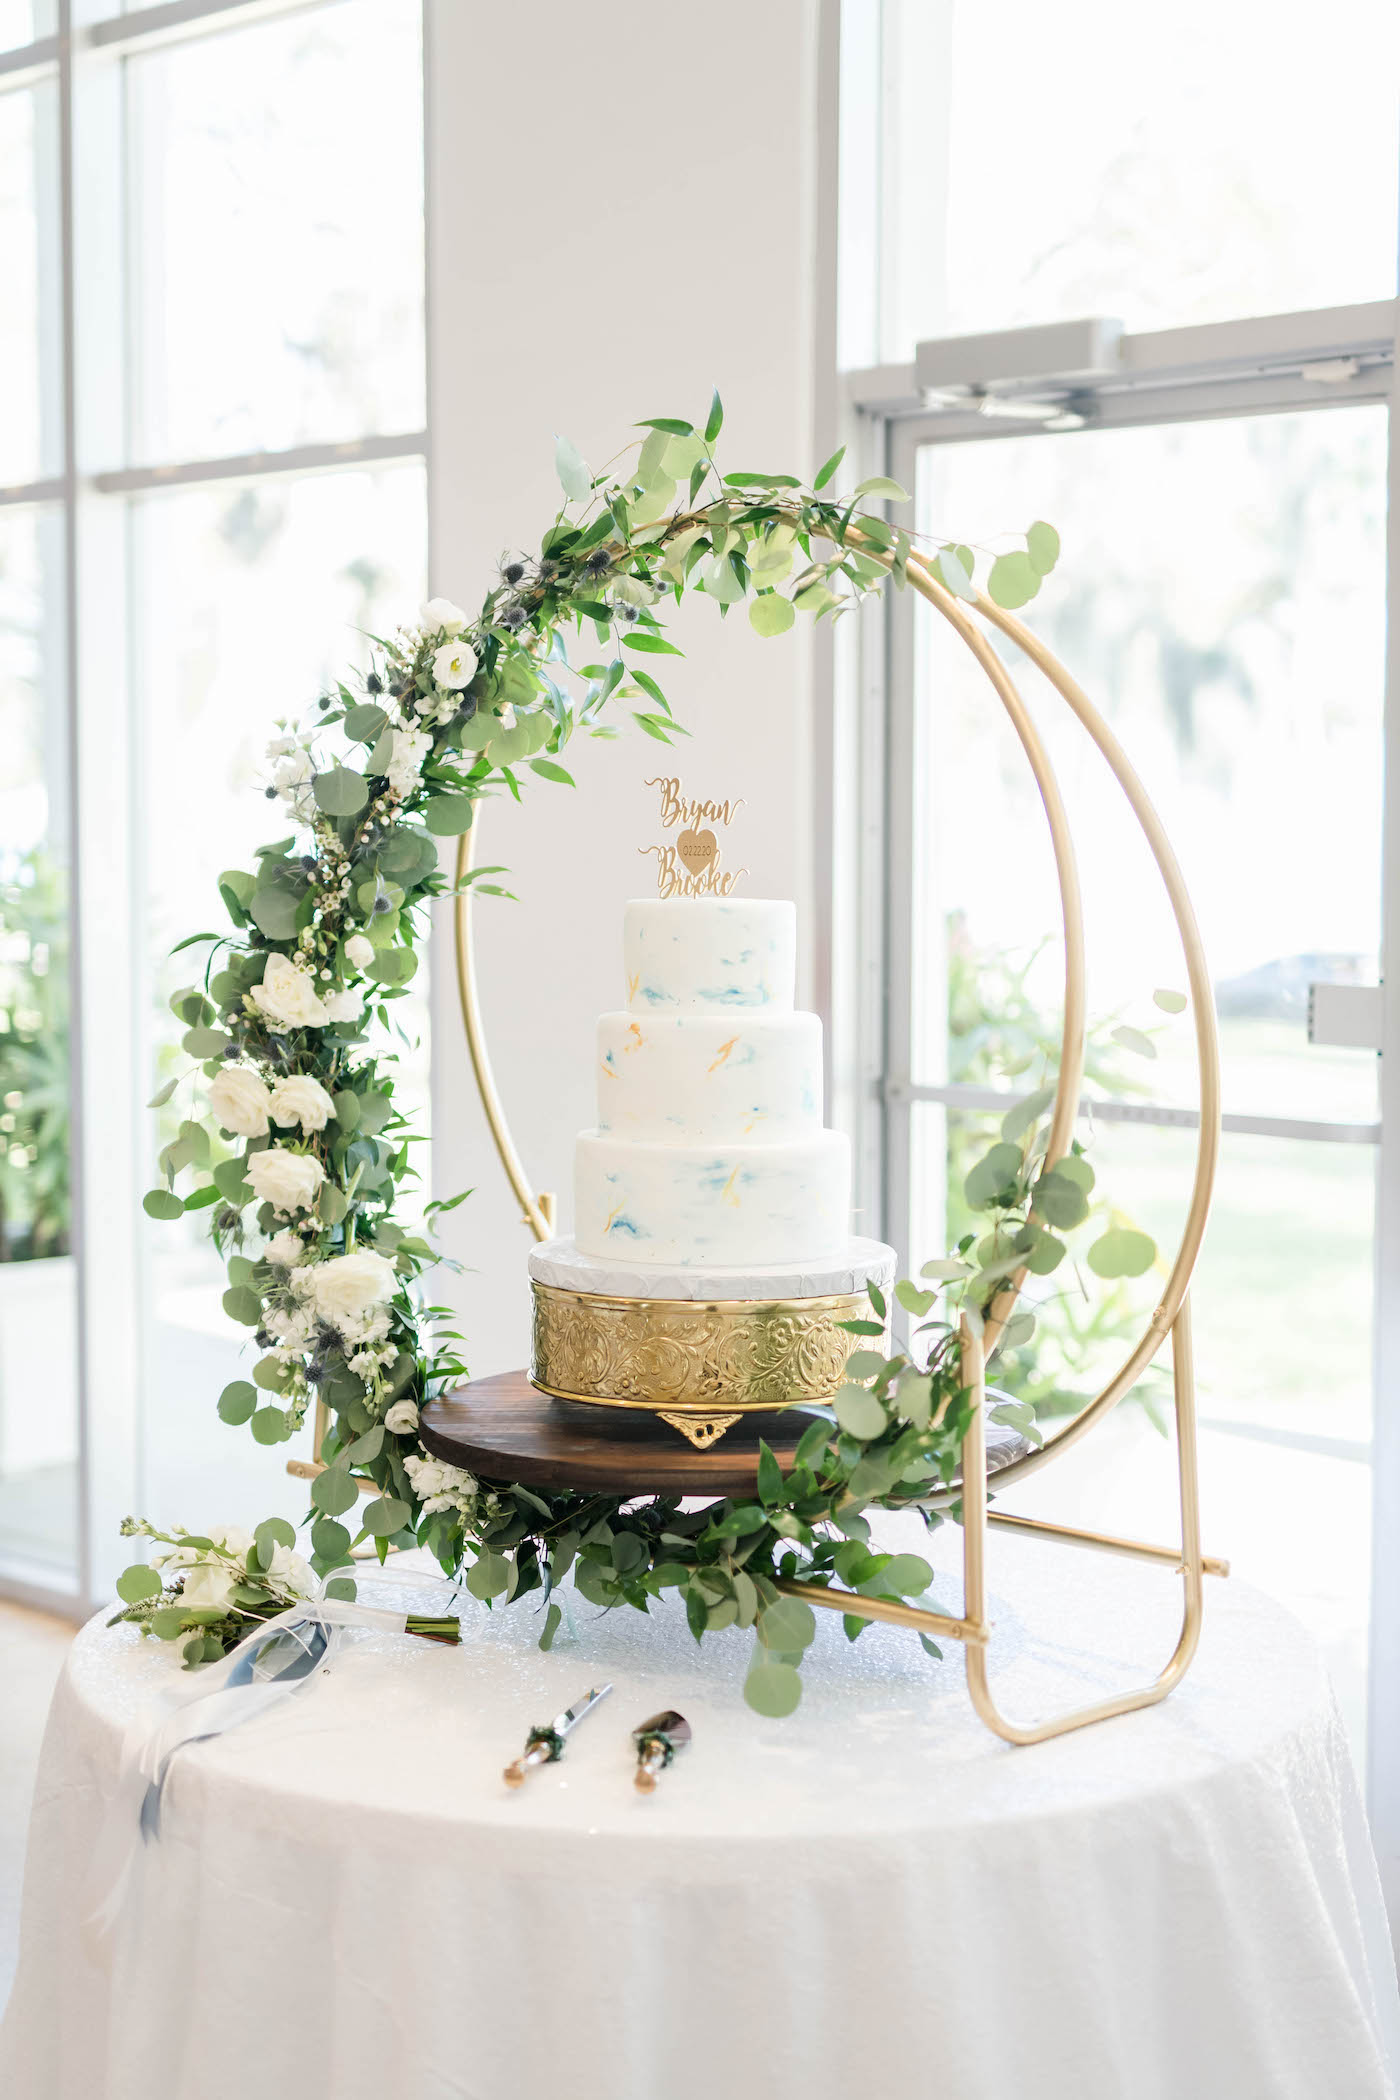 Wedding Cake Table Display with Unique Gold Moon Stand accented with Greenery Garland   Three Tier Fondant Wedding Cake with Marbled Icing